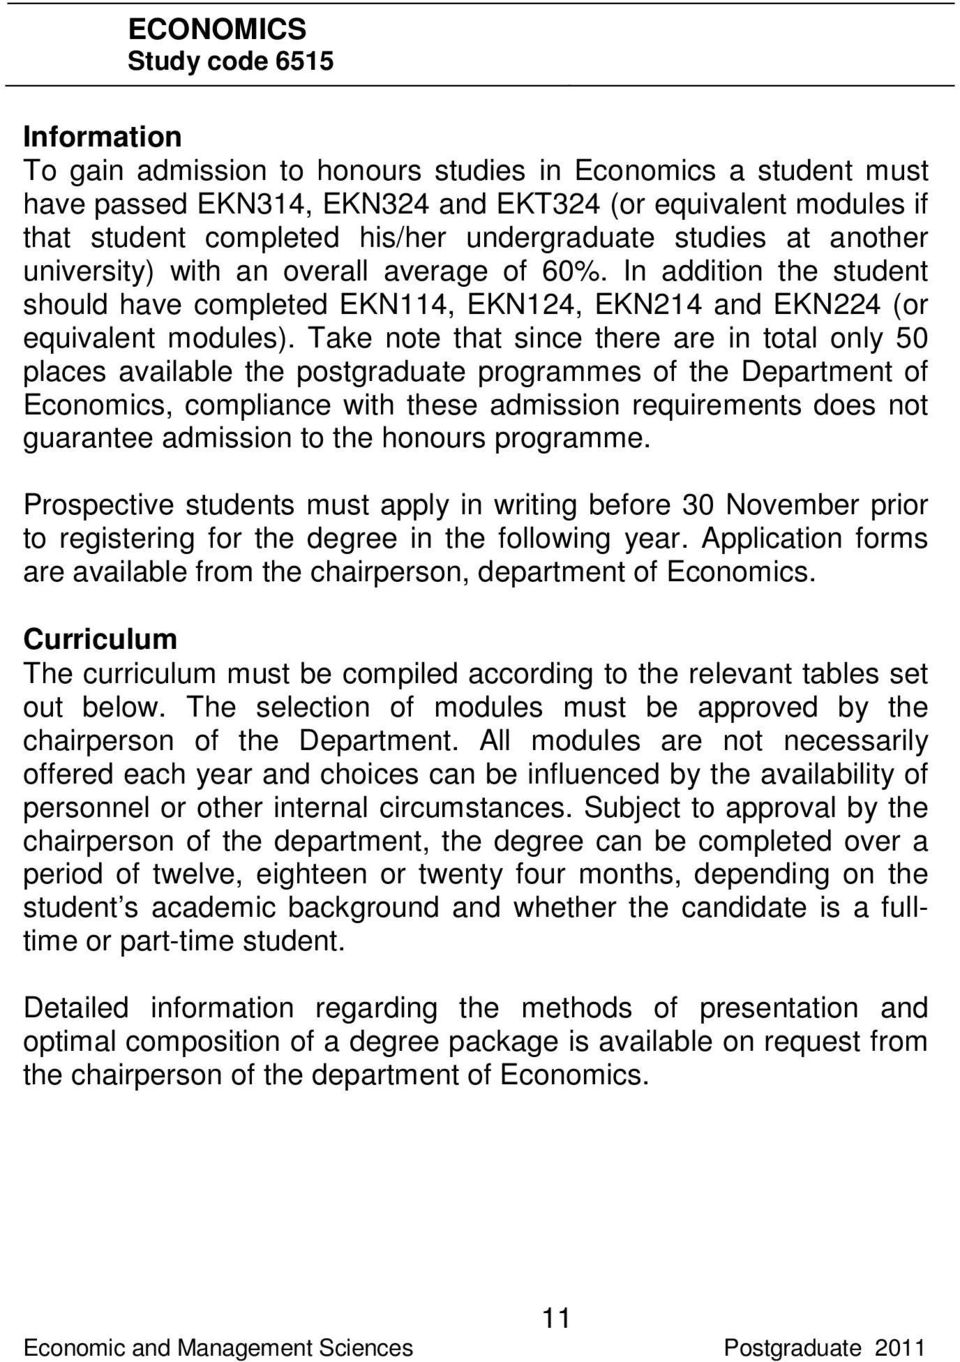 Take note that since there are in total only 50 places available the postgraduate programmes of the Department of Economics, compliance with these admission requirements does not guarantee admission